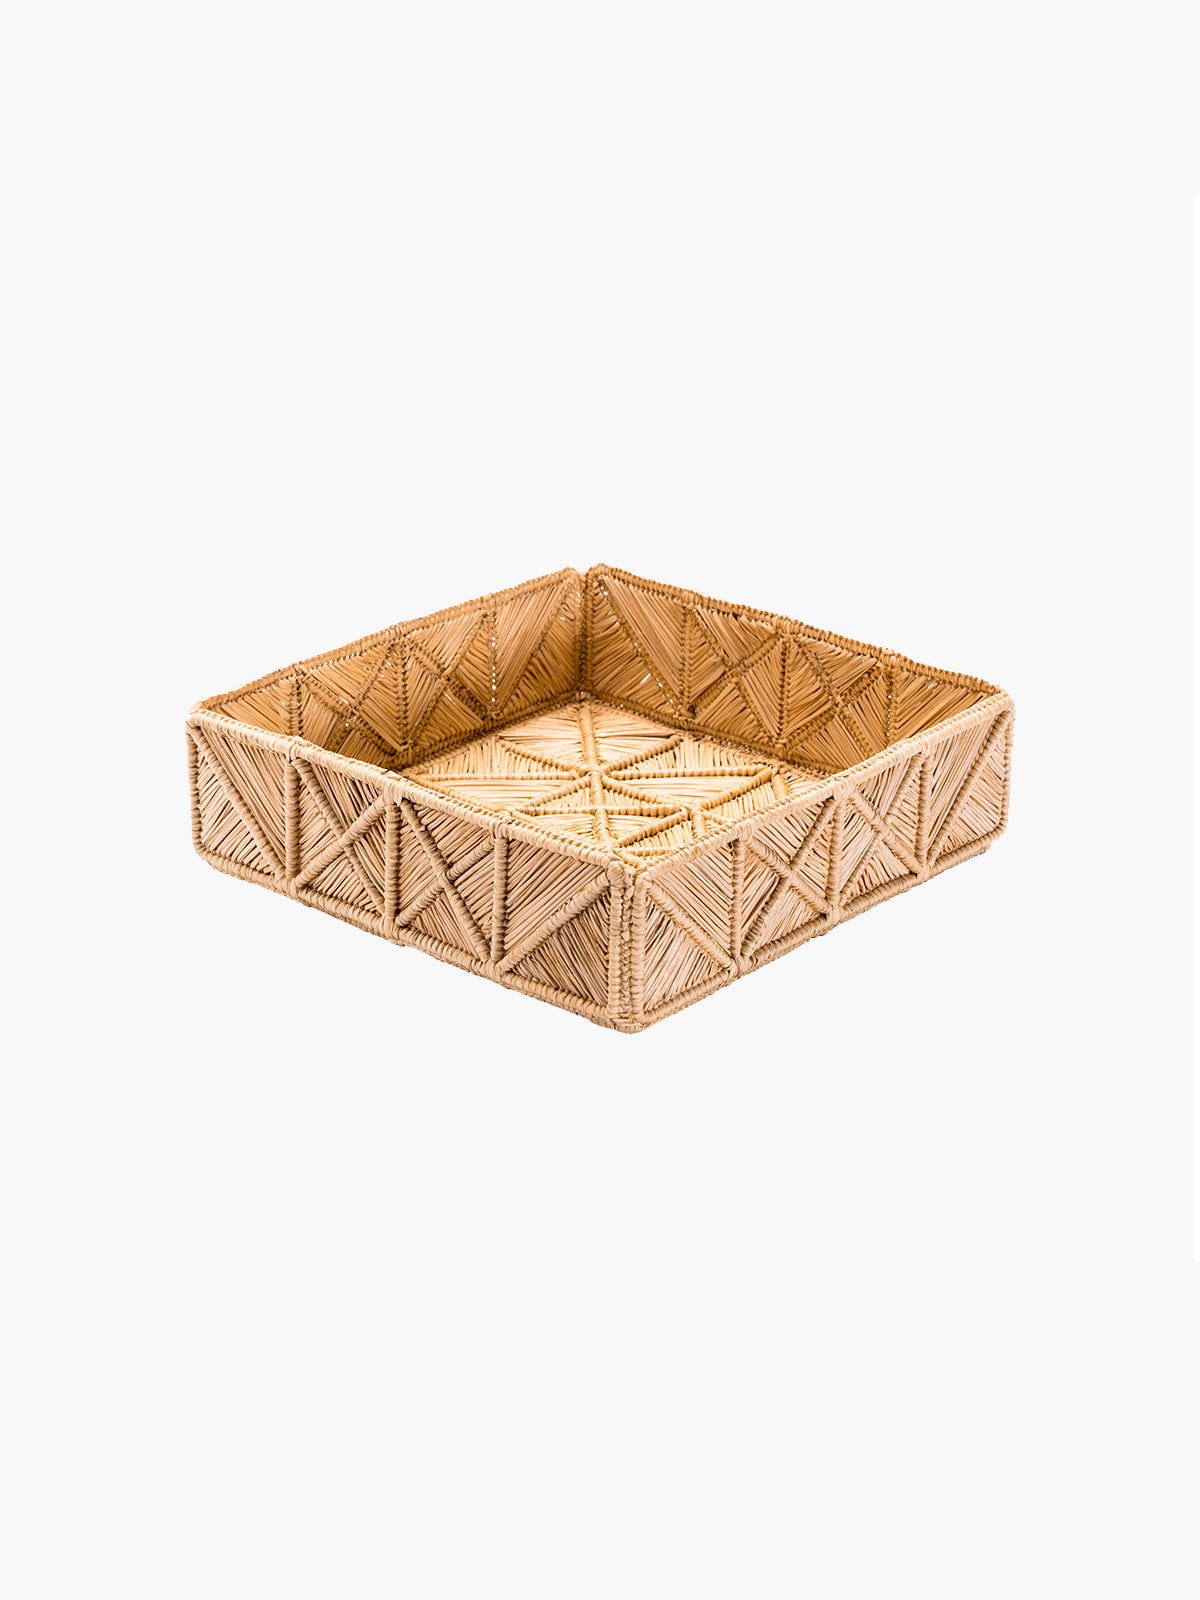 Geometric Medium Square Tray